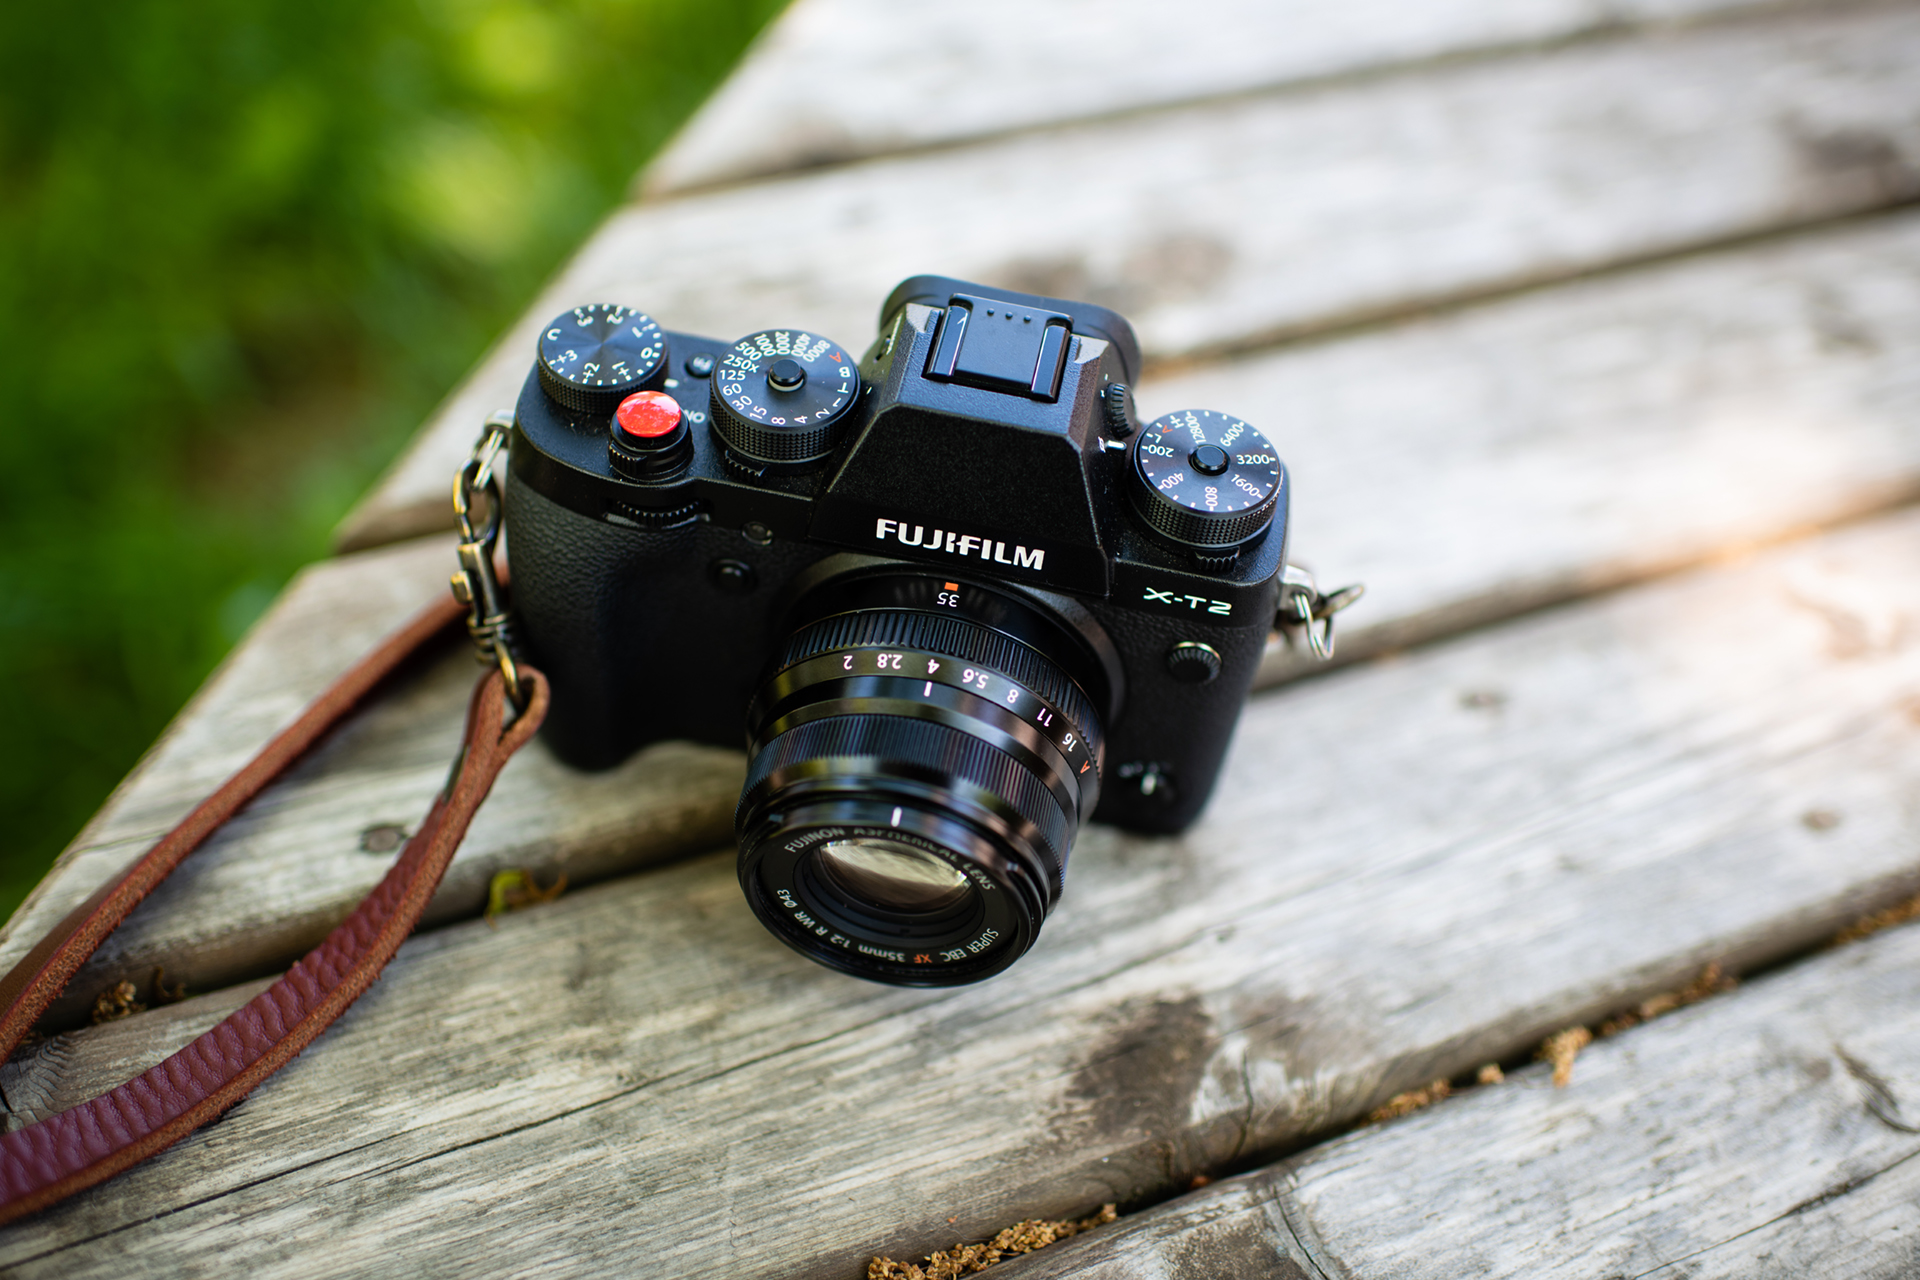 """The Fujifilm XT-2 and the FUJINON XF35mmF2 R WR. I have been """"testing"""" the Fuji mirrorless system since April and I'm in love. I have so much excitement these days about where the industry is going with mirrorless cameras. Super fun stuff!"""